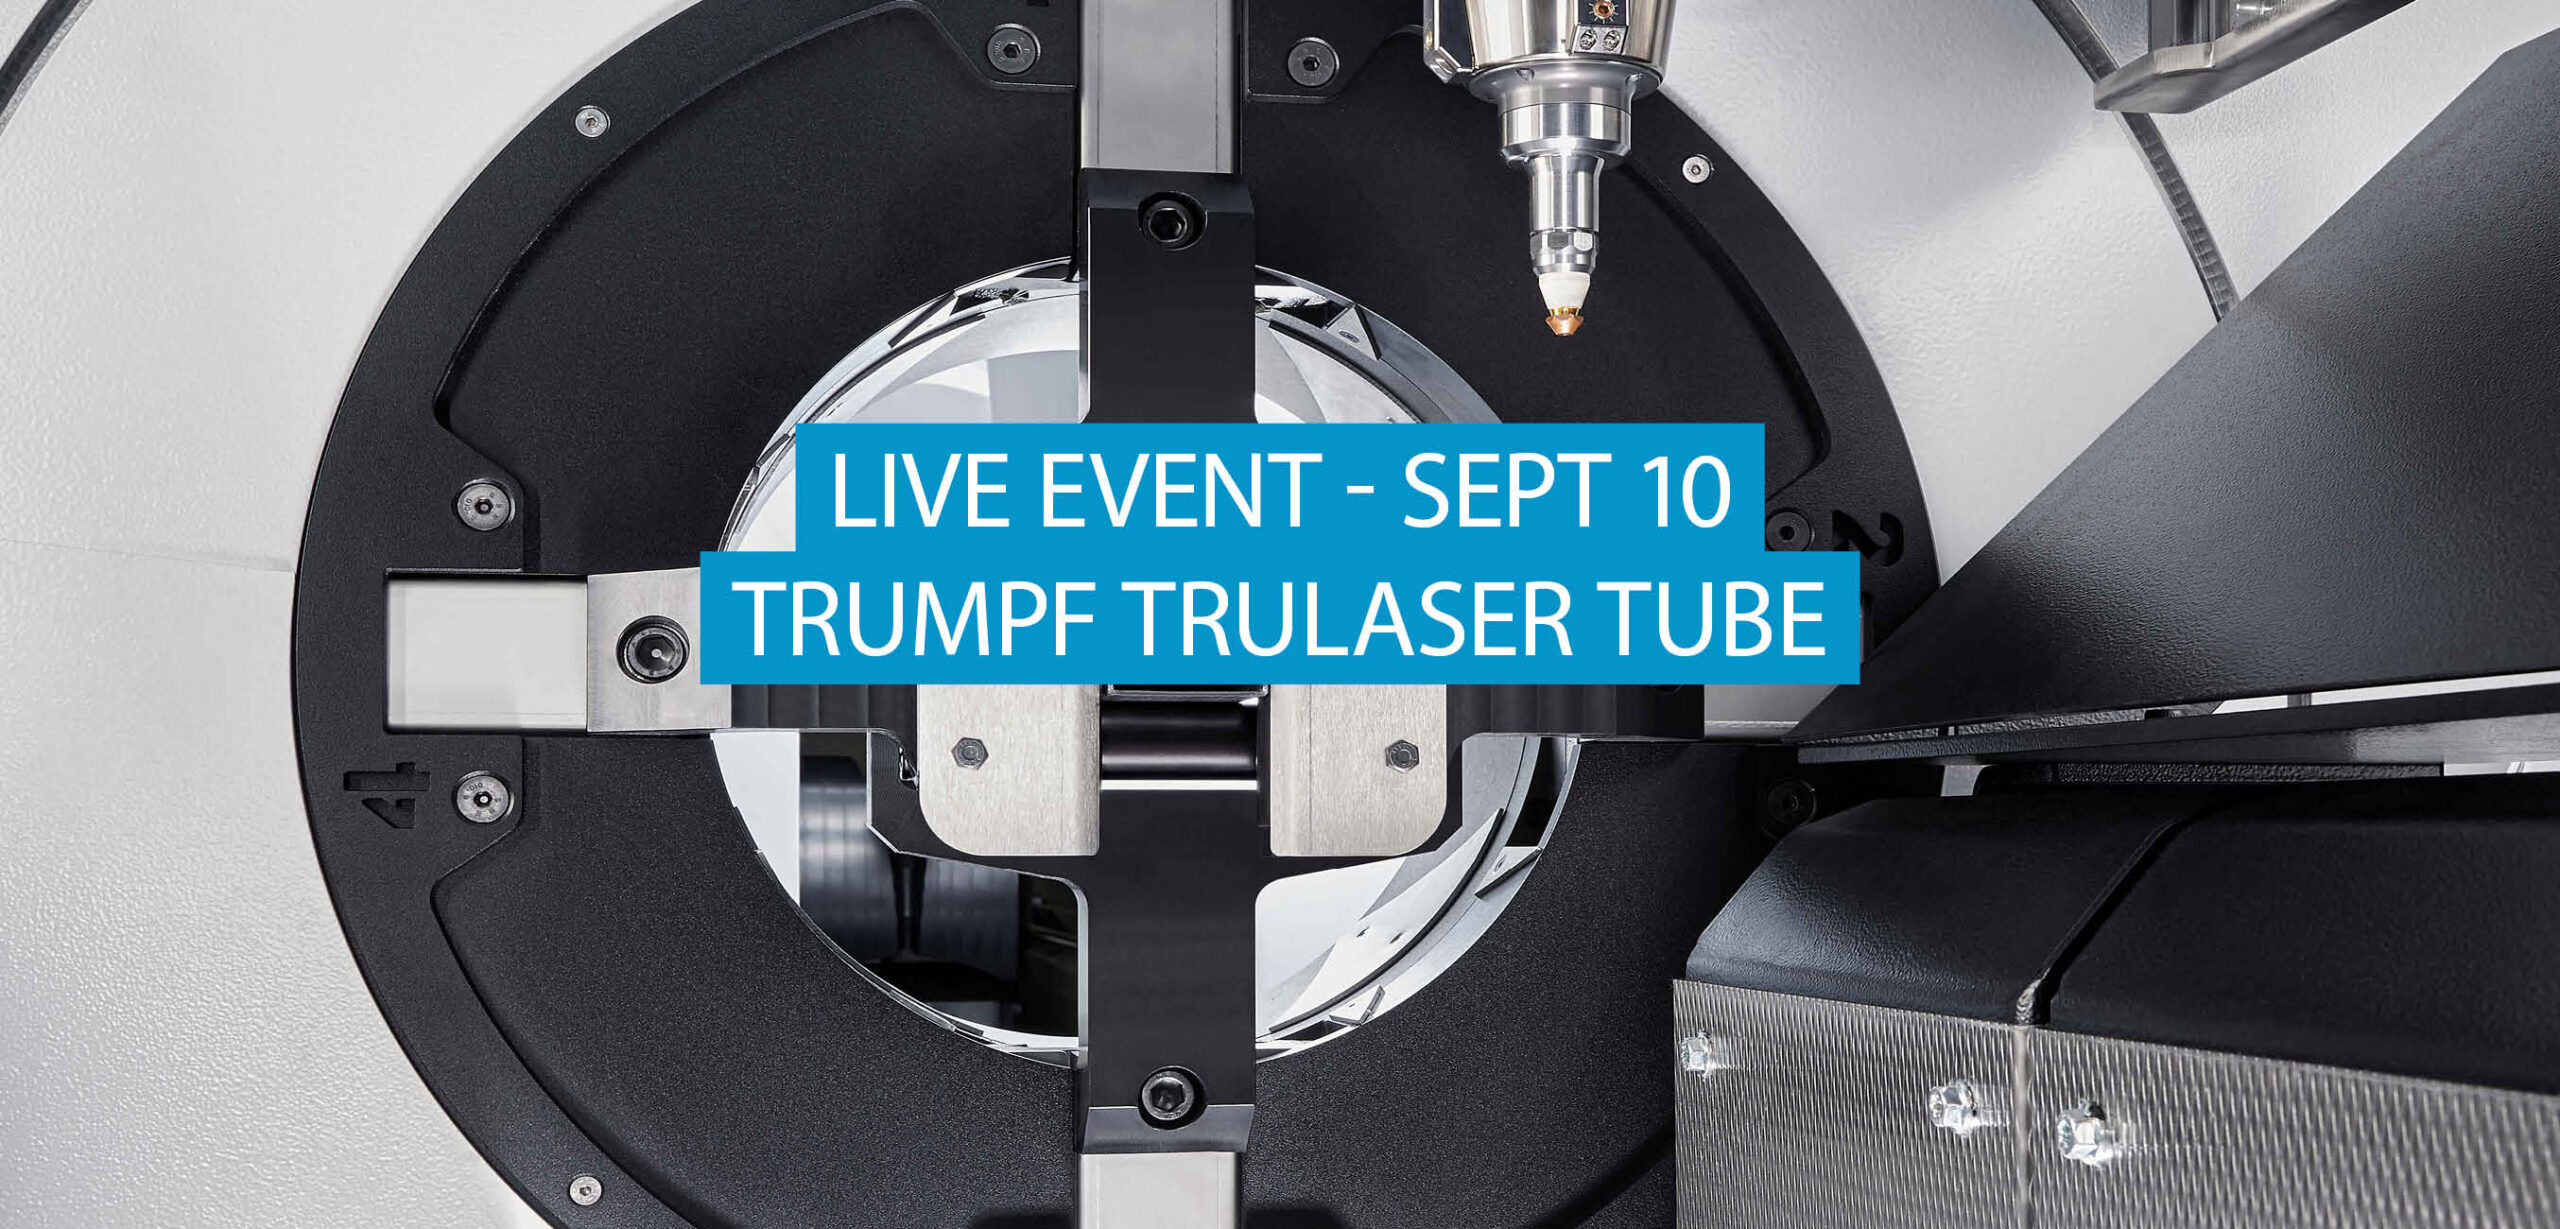 TRUMPF Laser Tube Demo